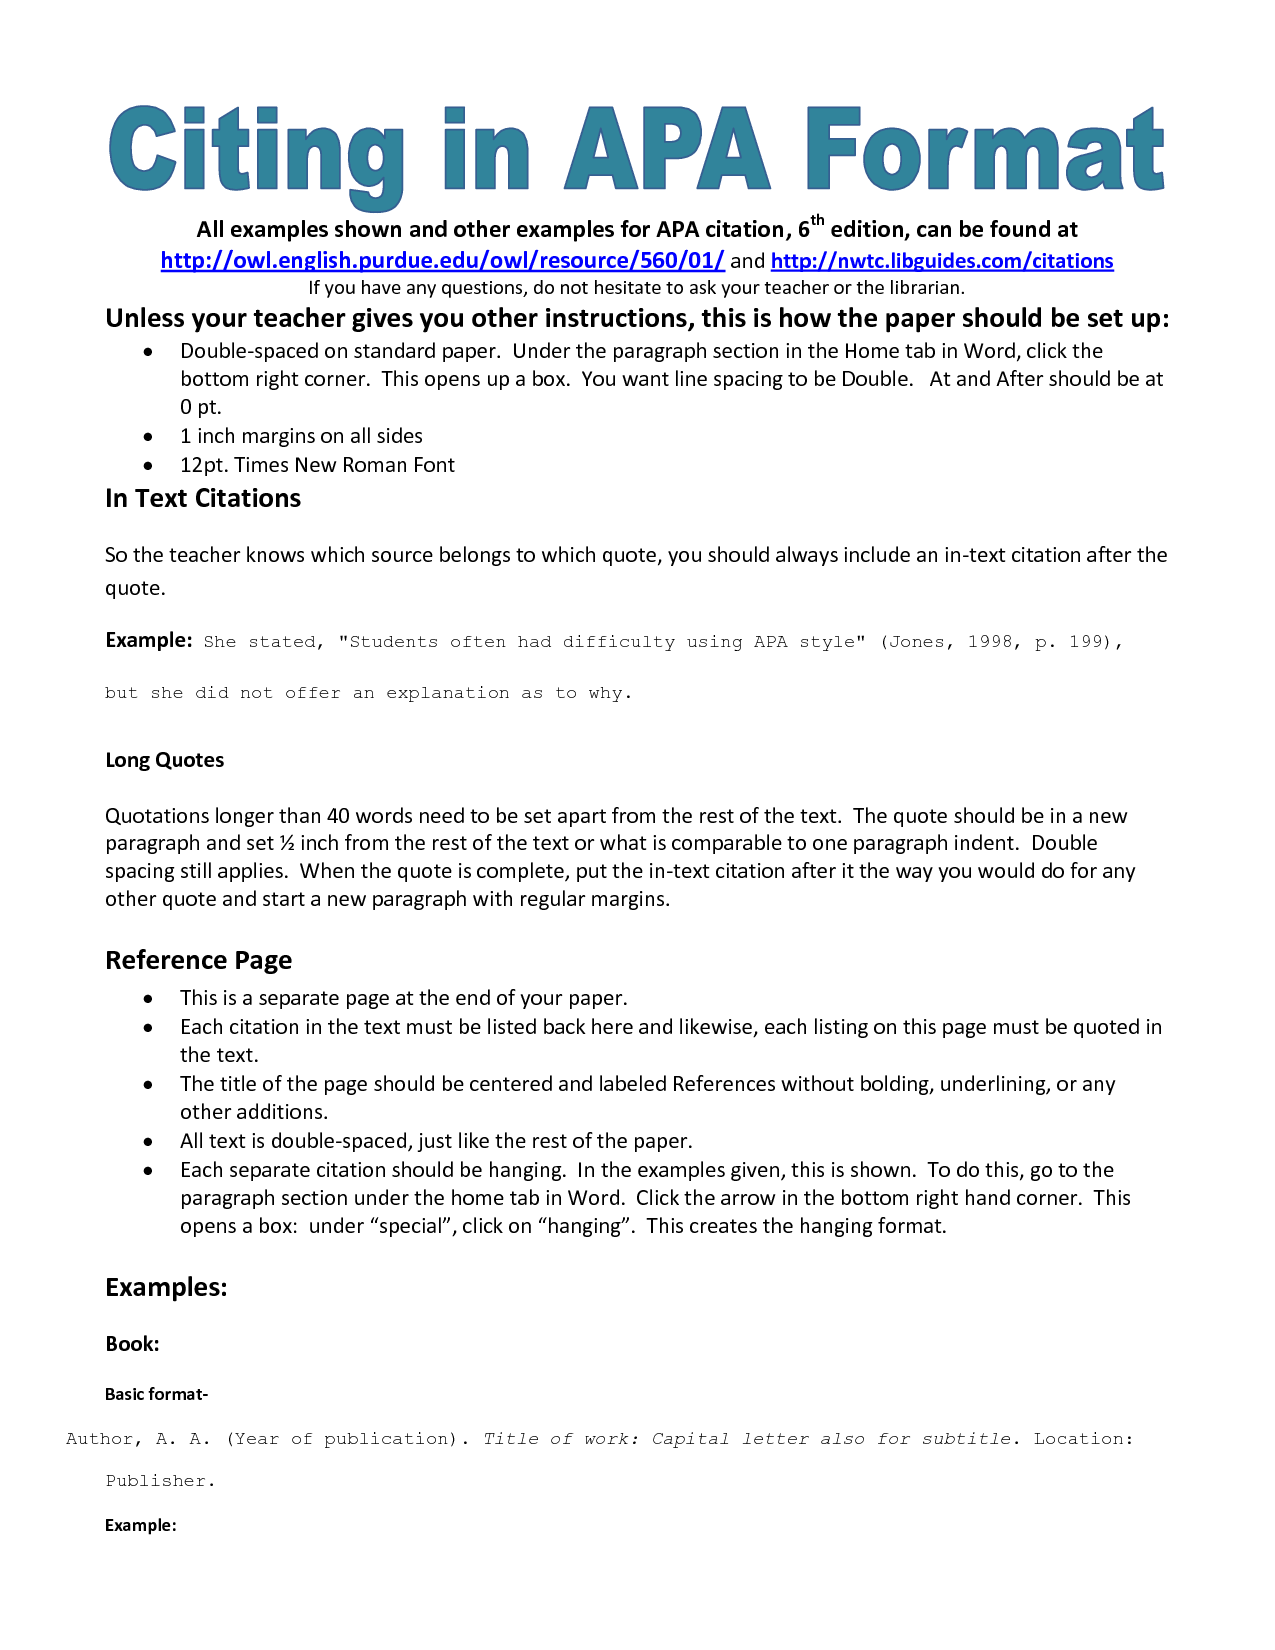 apa format reference list template best online resume builder apa format reference list template references page template apa writing commons apa format example reference page